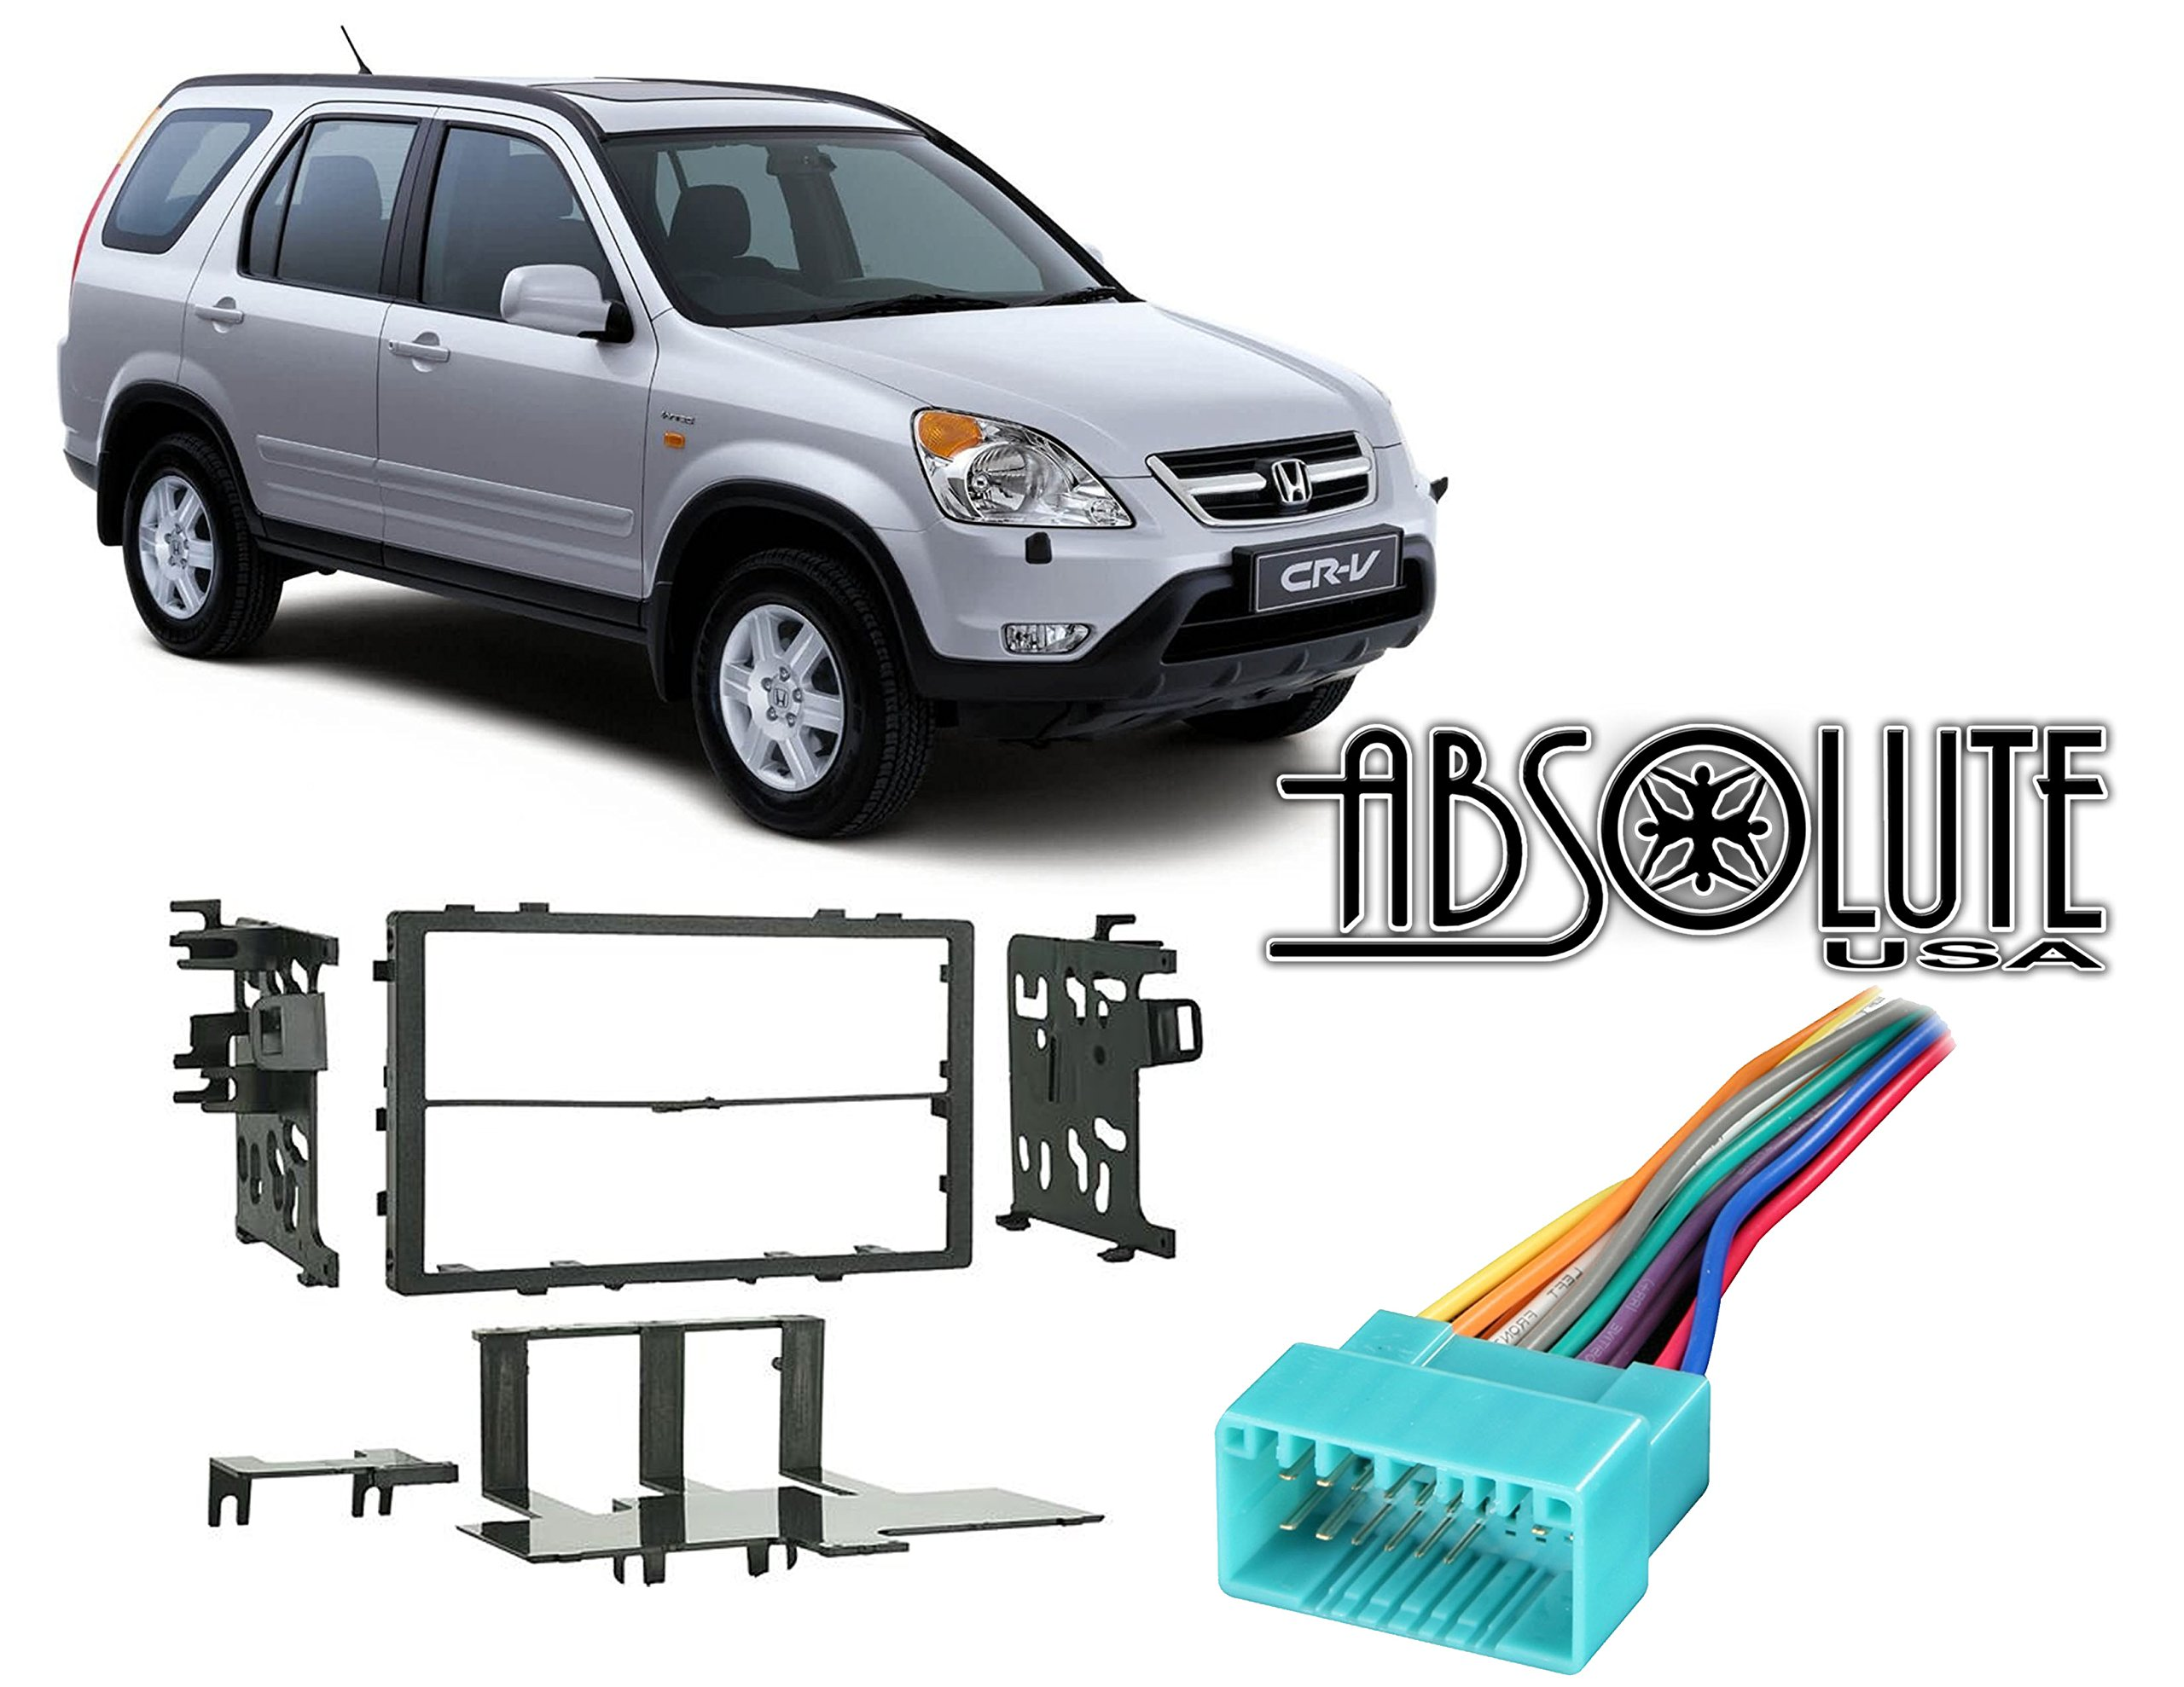 Cheap Honda Crv Radio Wiring Diagram Find 06 Civic Si Stereo Free Picture Get Quotations Absolute Radiokitpkg19 Fits 1999 2006 Double Din Aftermarket Harness Install Dash Kit